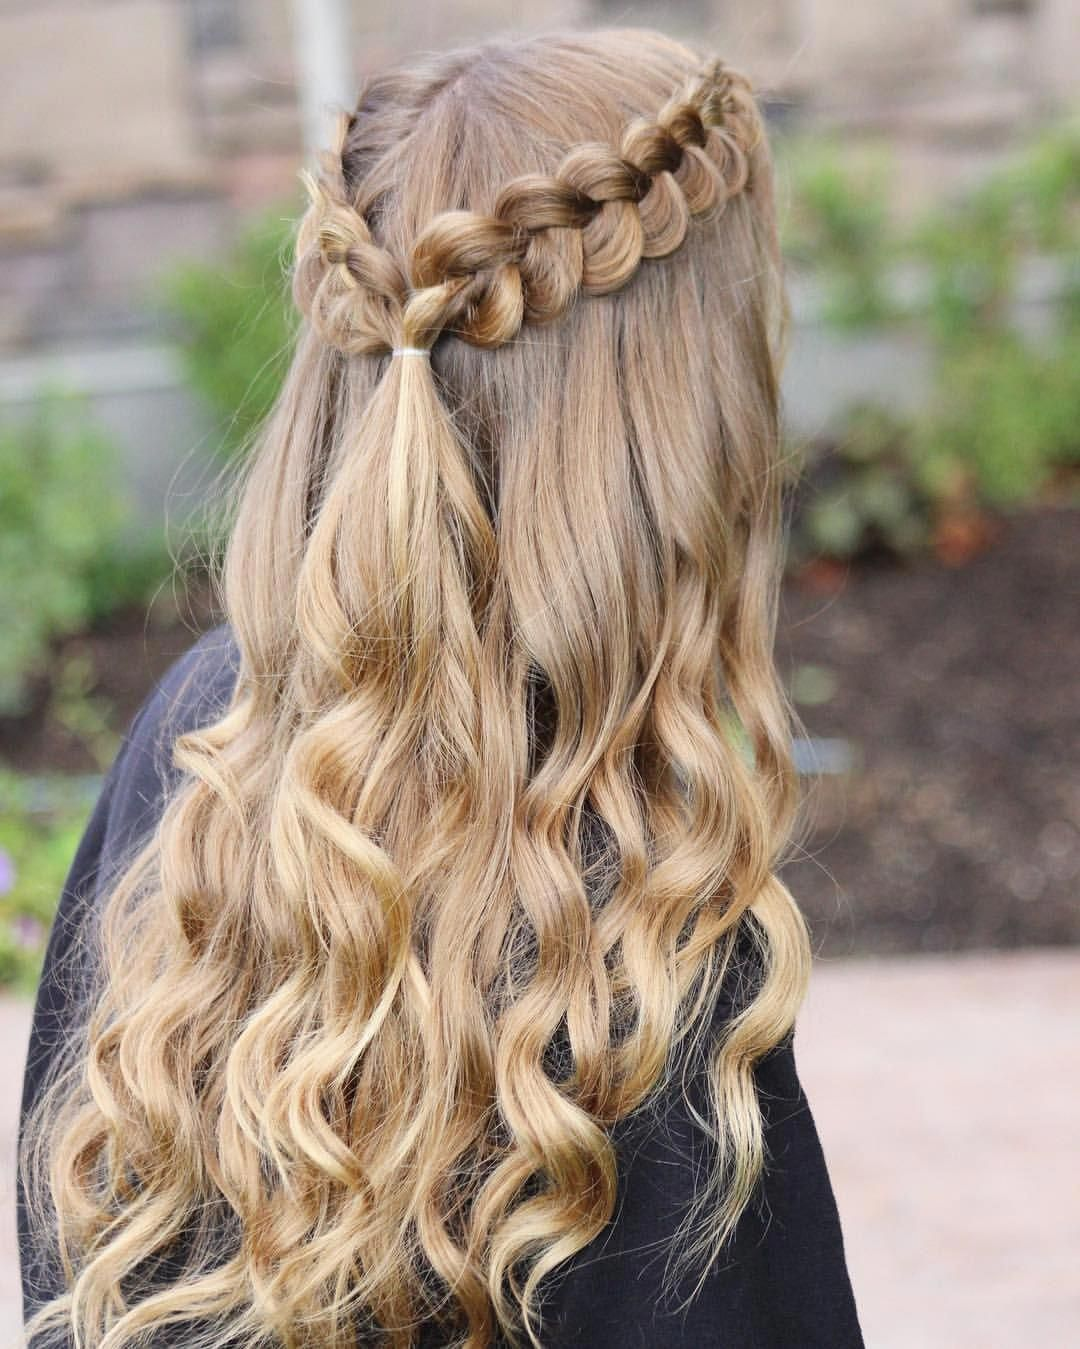 38 Old Fashioned Hoco Hair Styles Picture Collectionloved Doing My Cute Friends Hair For Homecoming Prom Hairstyles For Long Hair Hair Styles Simple Prom Hair